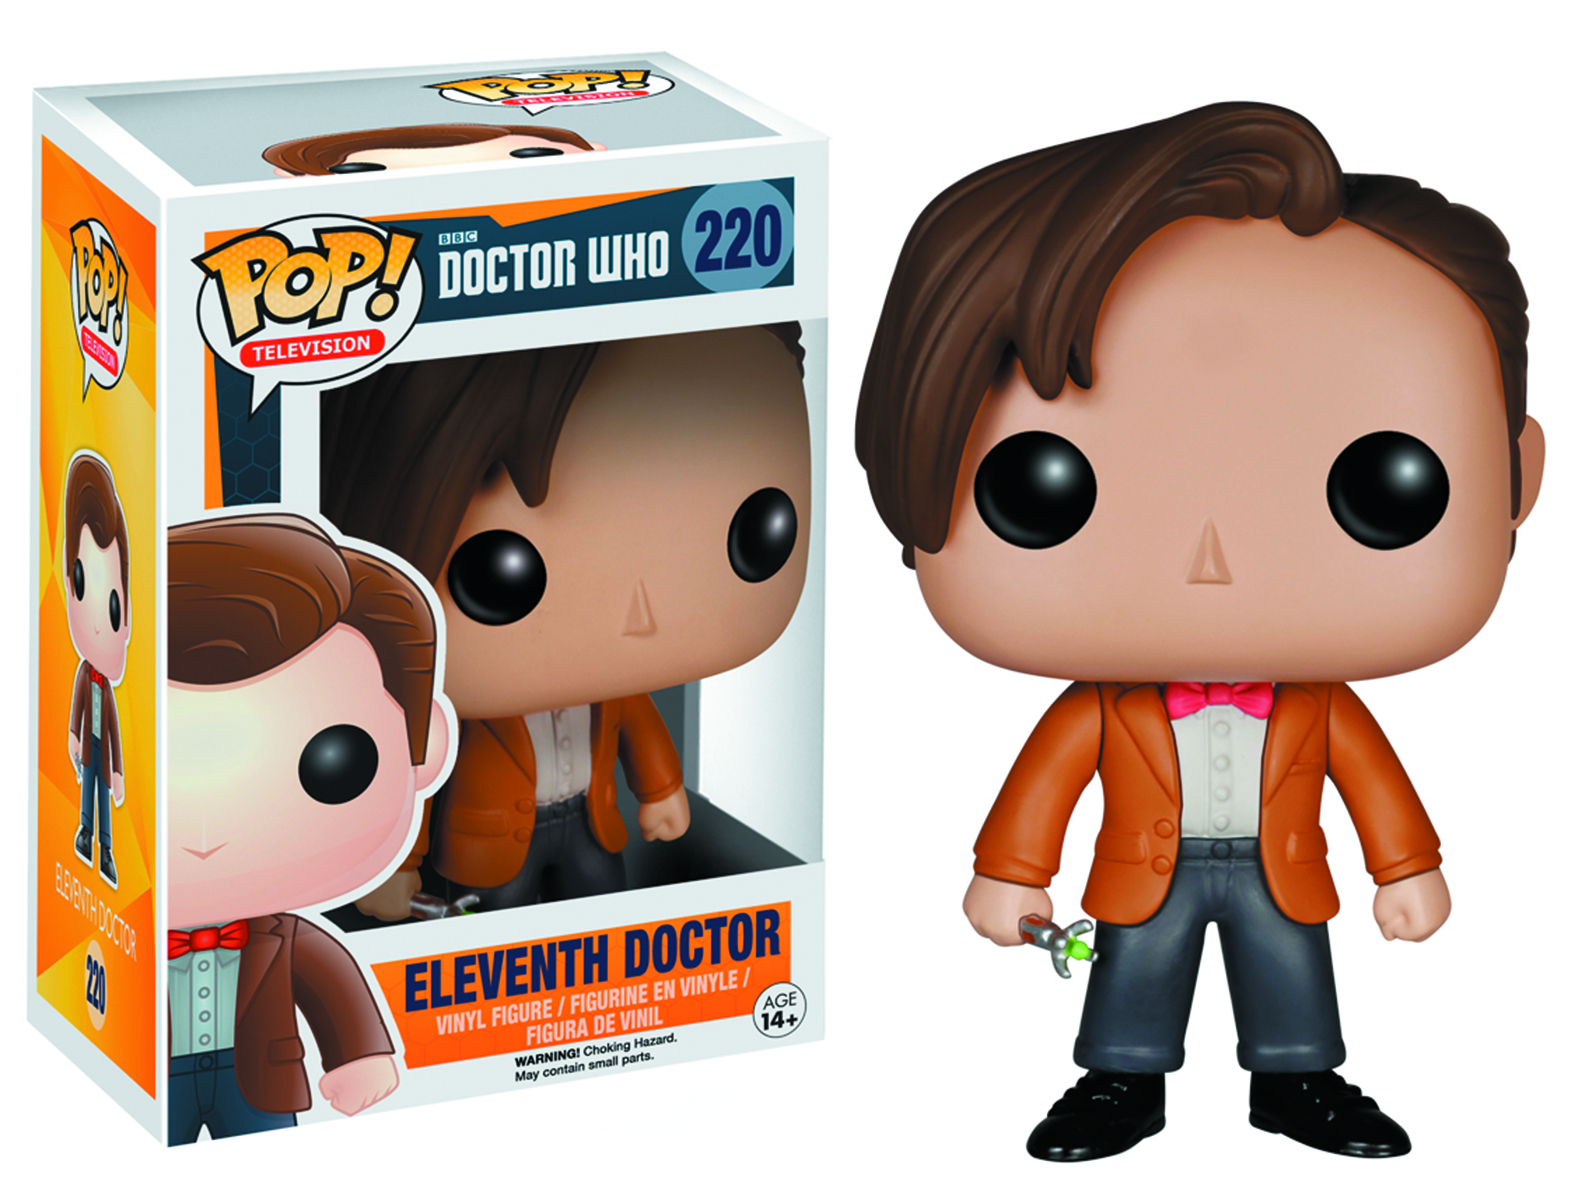 POP DOCTOR WHO 11TH DOCTOR VINYL FIG